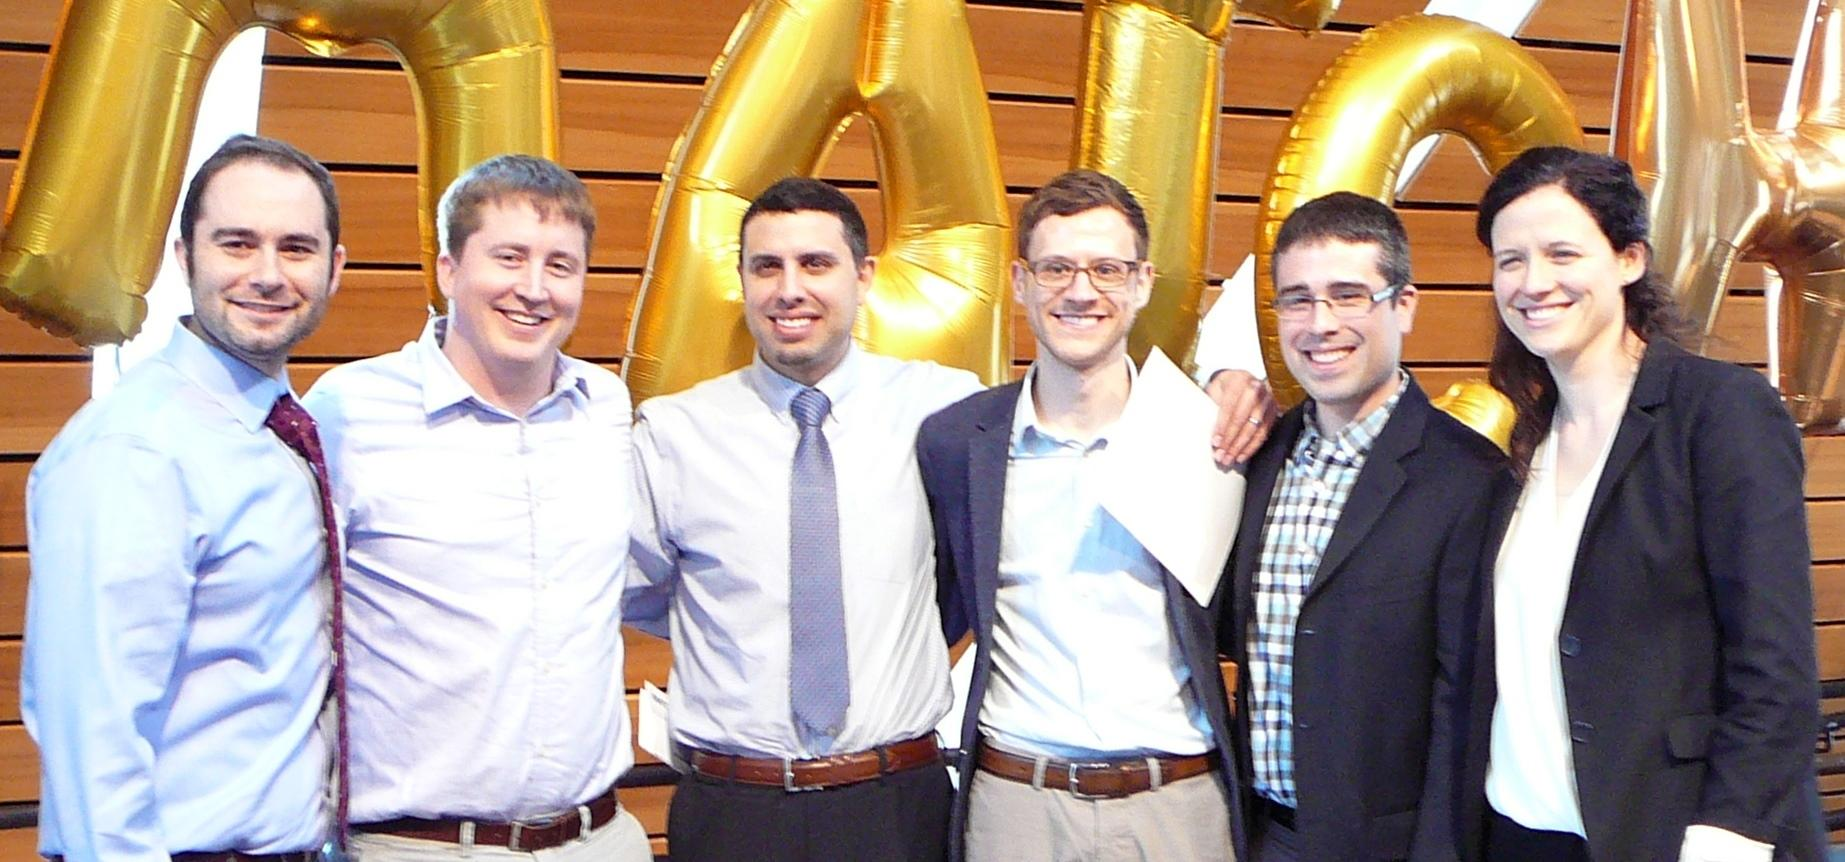 2016 University of Minnesota MSTP graduates at match day